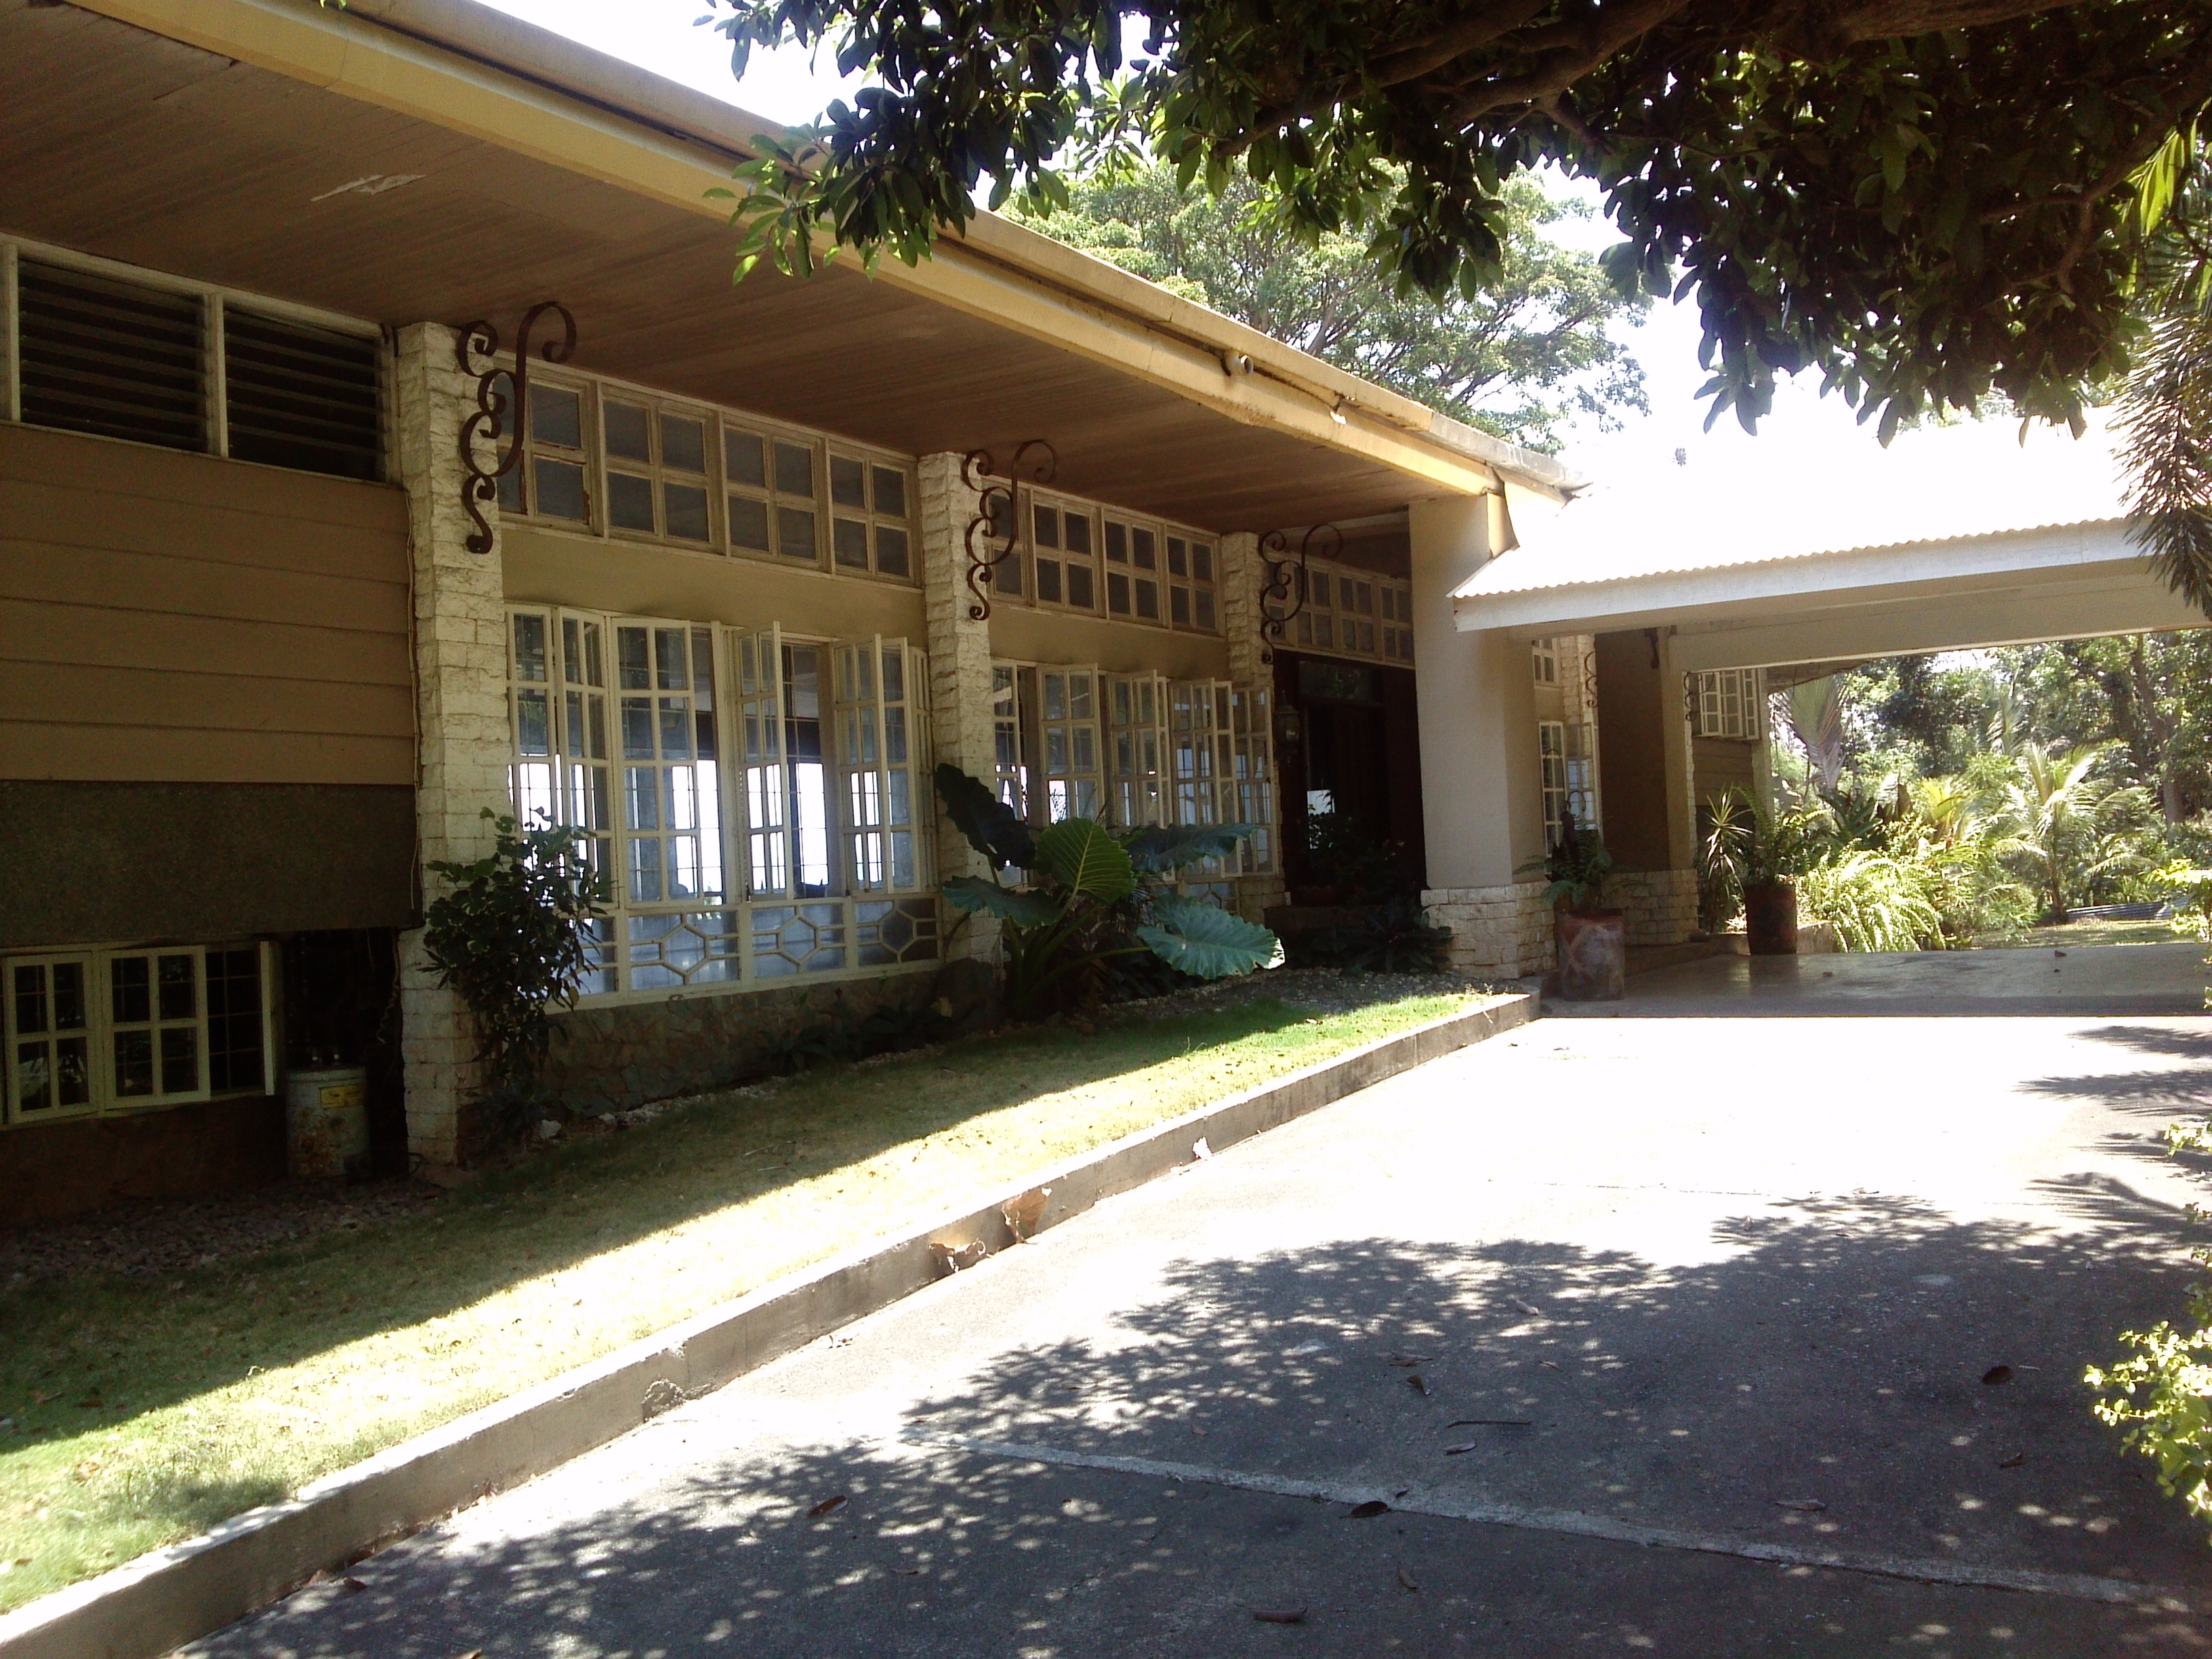 The Malasag House entrance